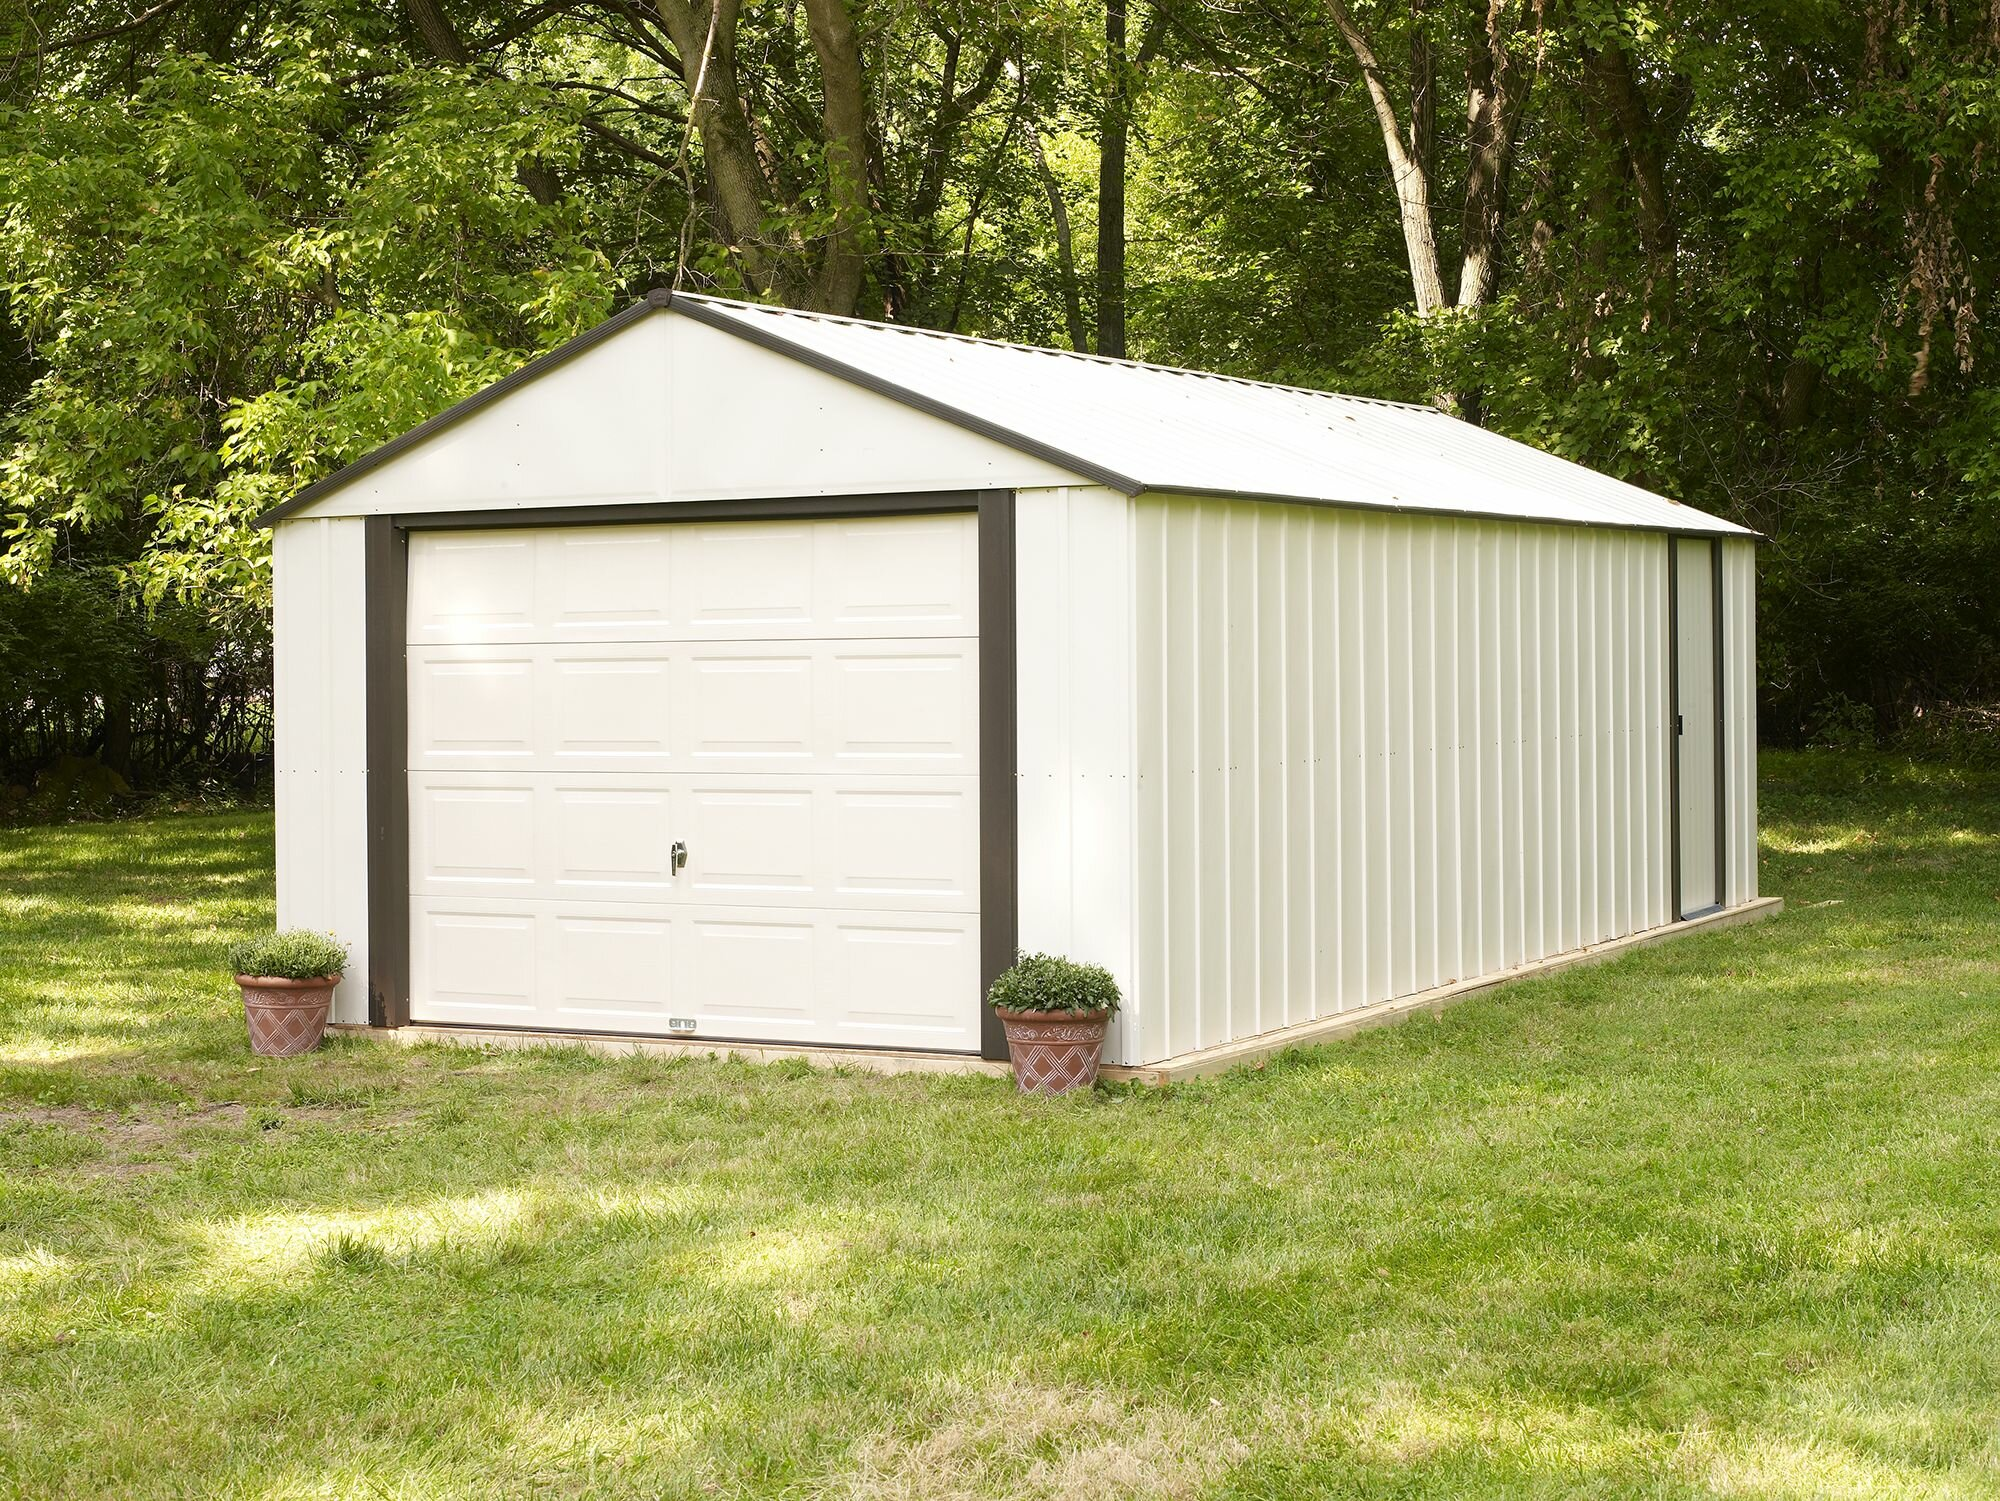 D Metal Garage Shed | Wayfair